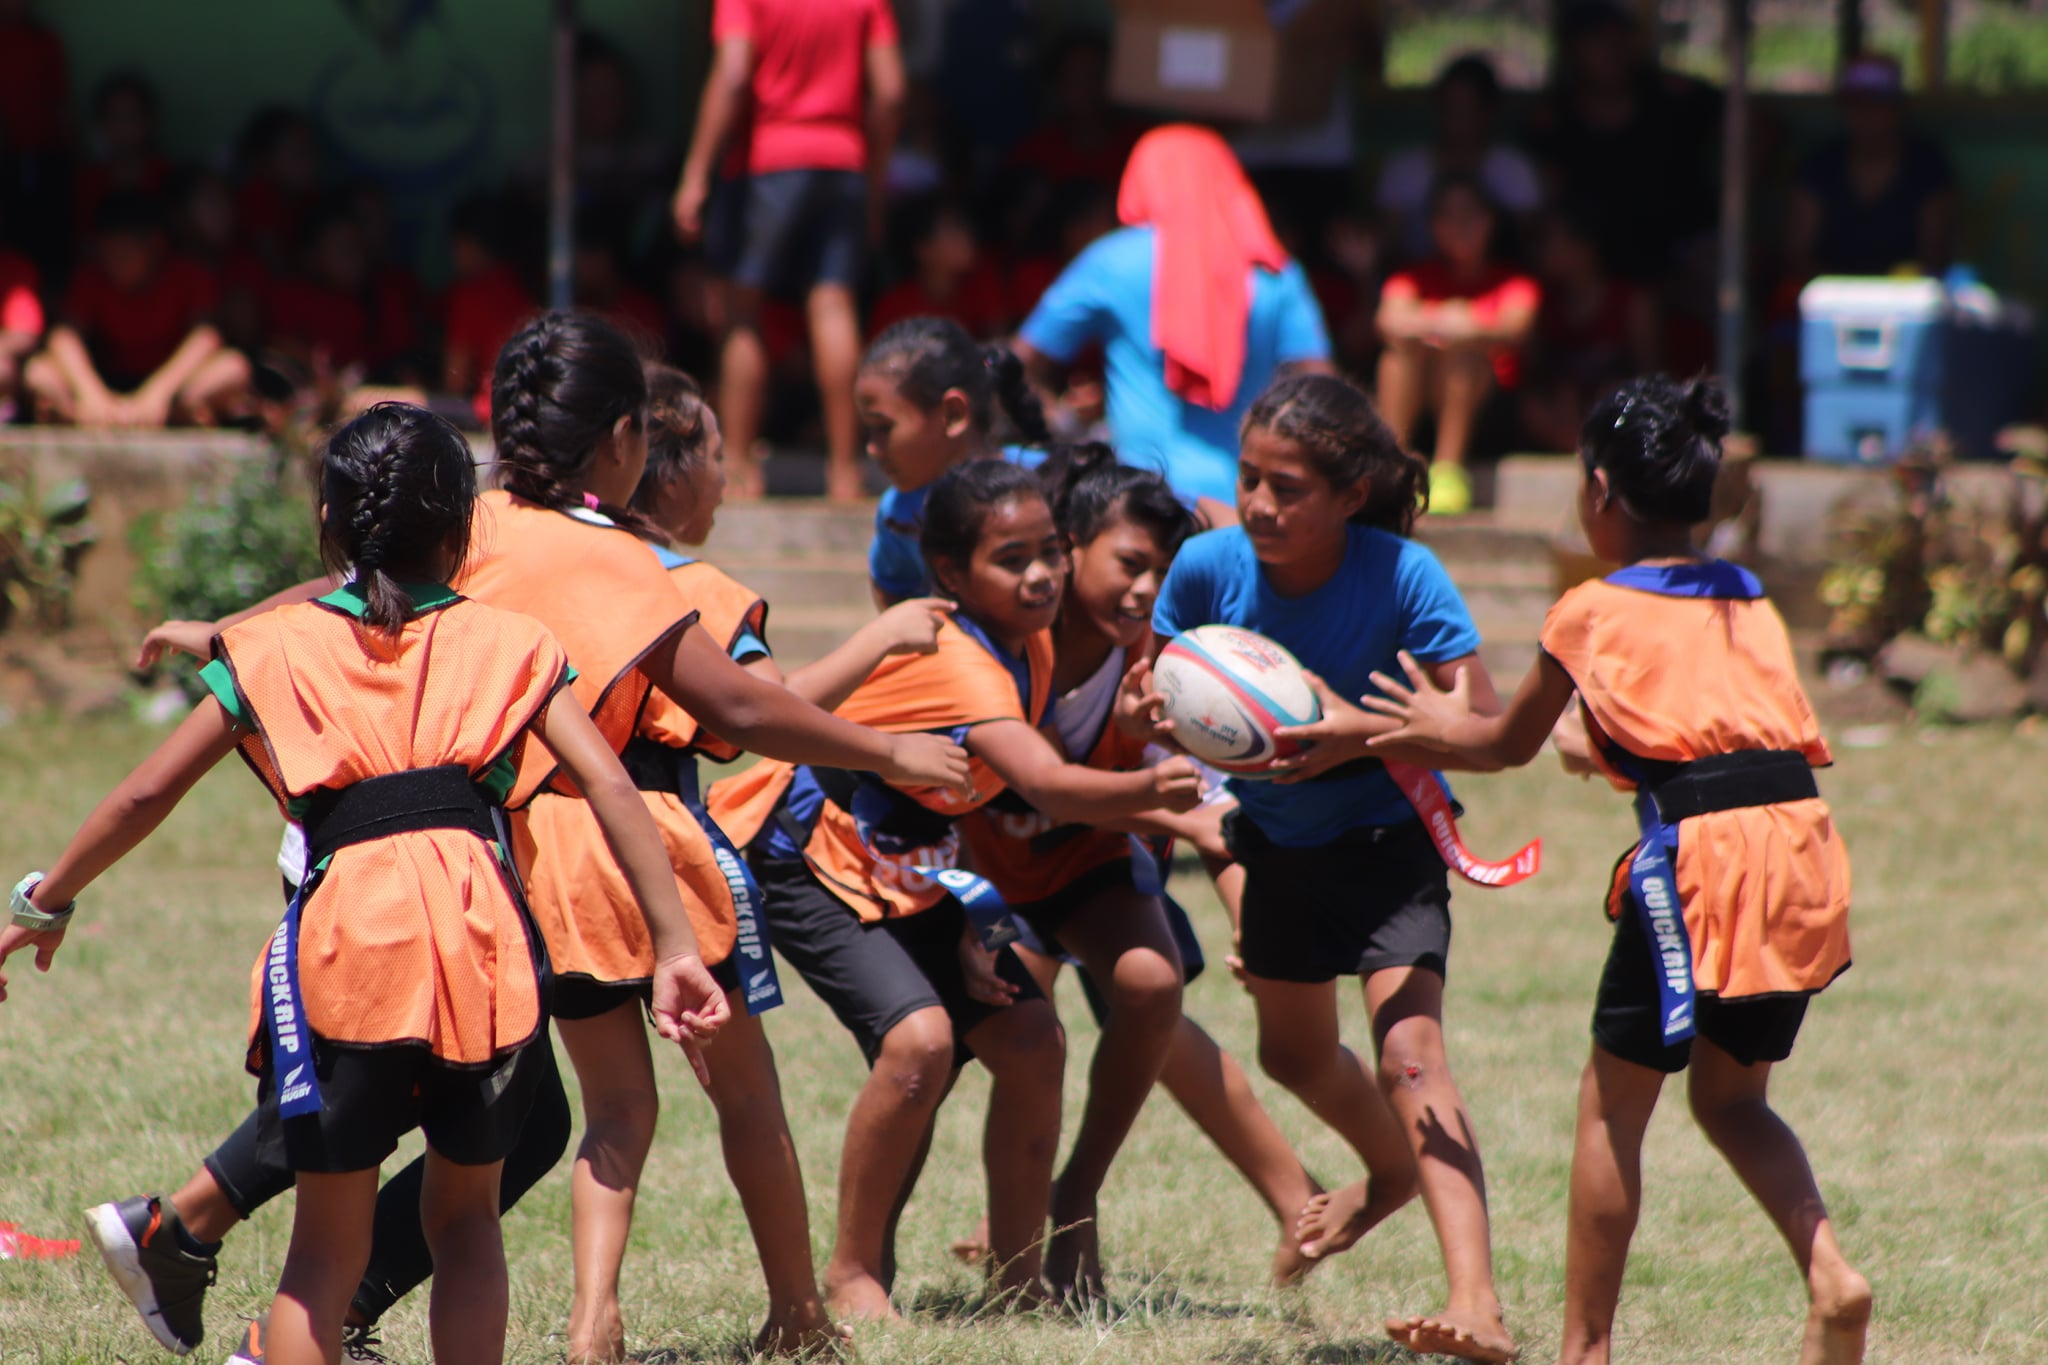 Get into Rugby/Quickrip Festival in the Aana 2 District at Mulifanua Primary School Field